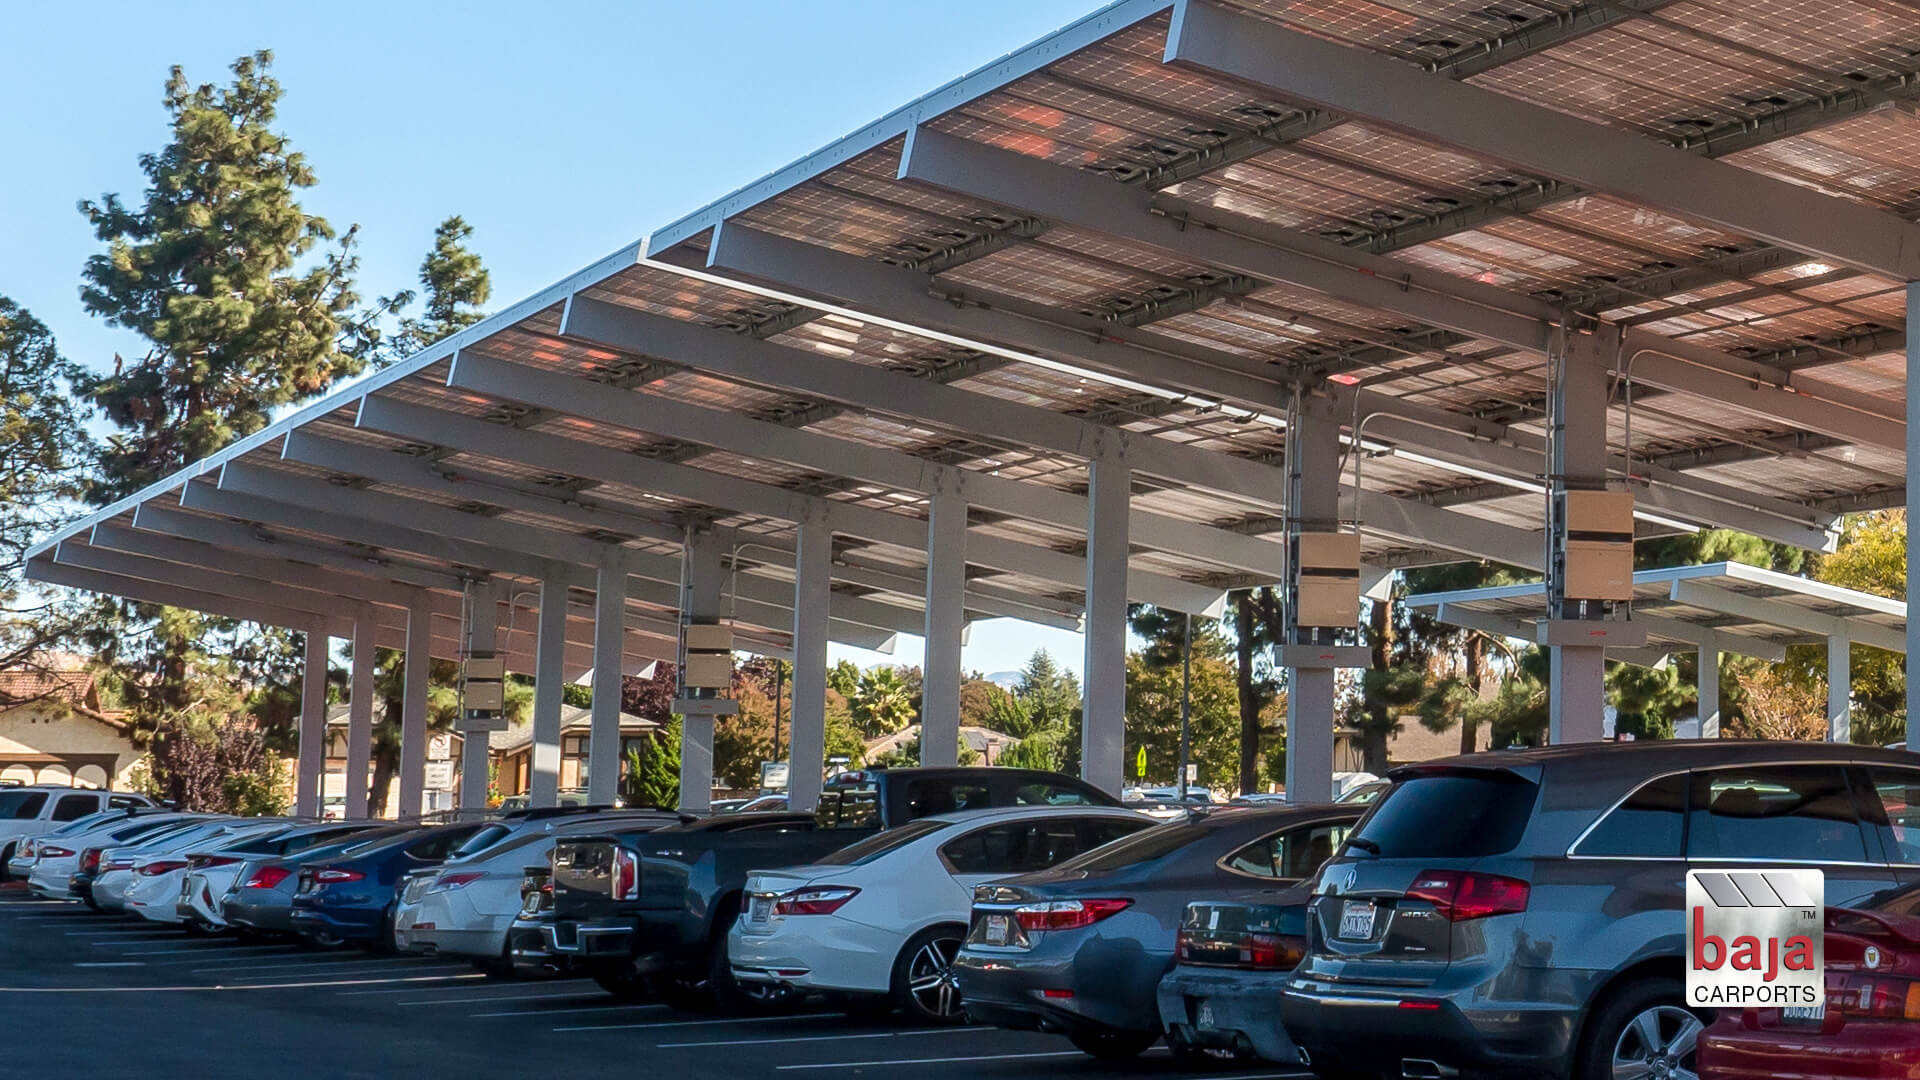 baja carports is helping schools become their own power production plant